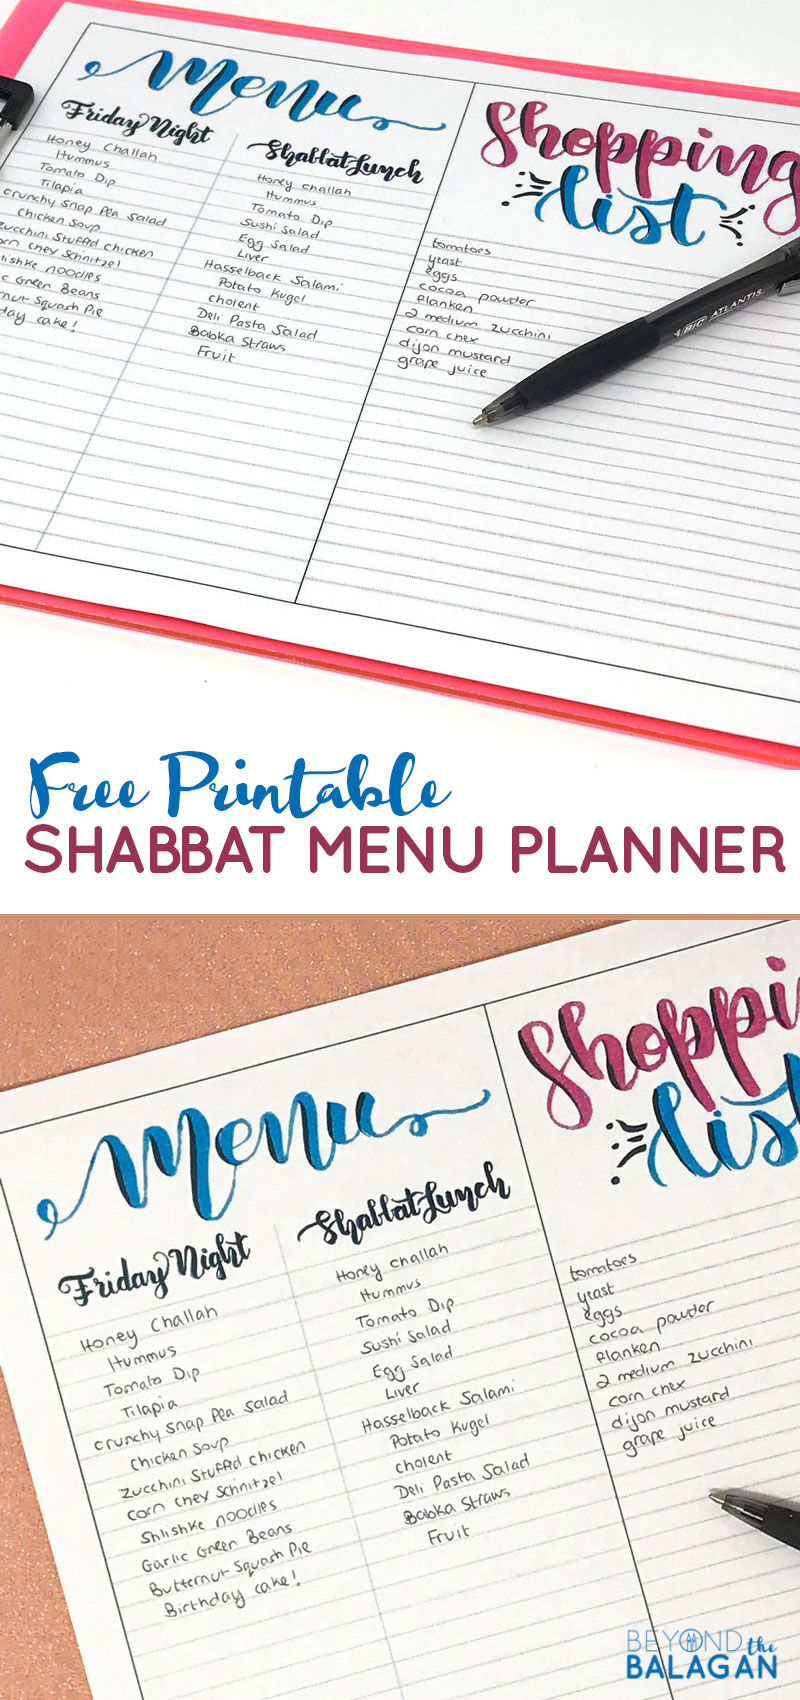 Click to grab your FREE printable copy of this beautiful brush lettered Shabbat menu planner - perfect for Shabbos meal planning! You'll love this resource to make prepping for the Jewish sabbath easier! #shabbat #shabbos #jewishholidays